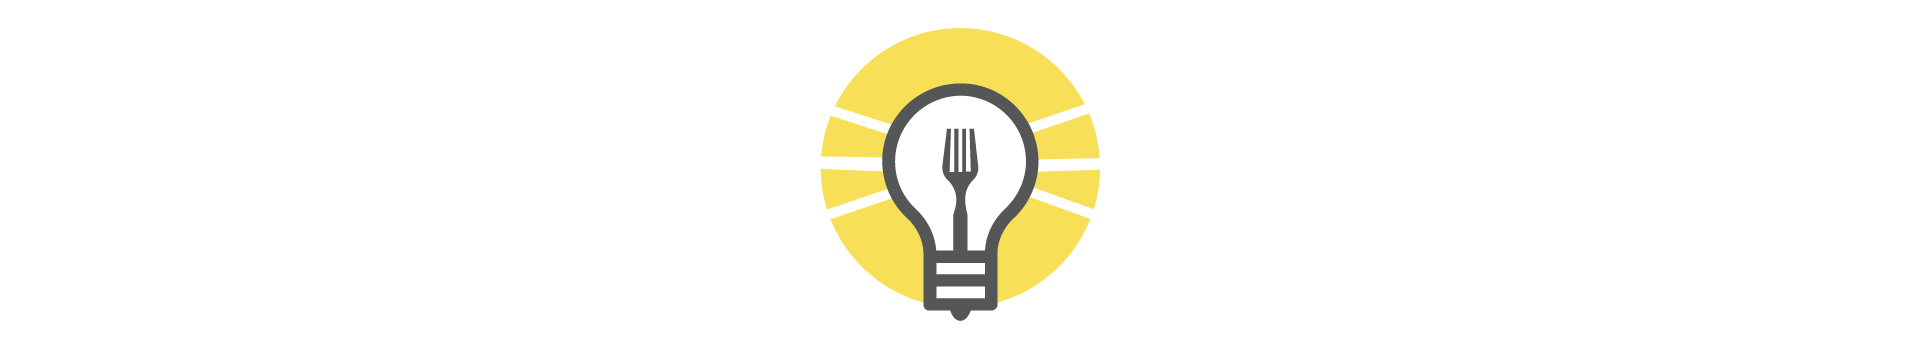 FoodSmarts.icon.web.png